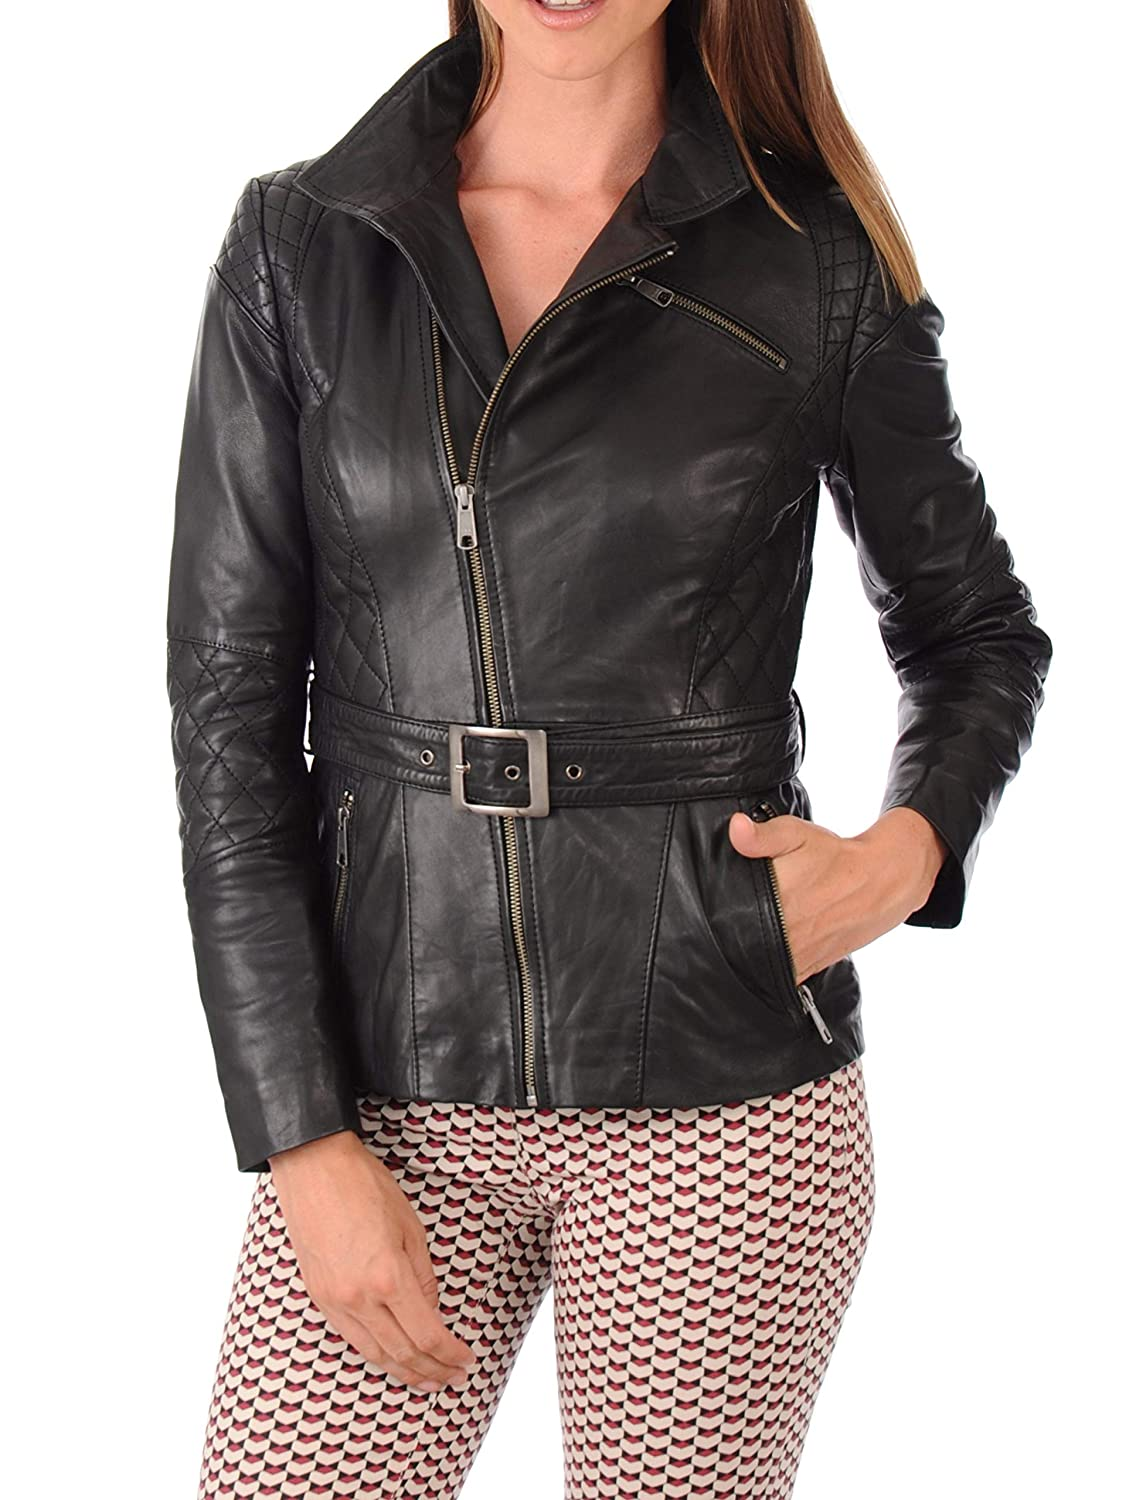 Black25fc DOLLY LAMB 100% Leather Jacket for Women  Slim Fit & Quilted  Moto, Bomber, Biker Winter Casual Wear